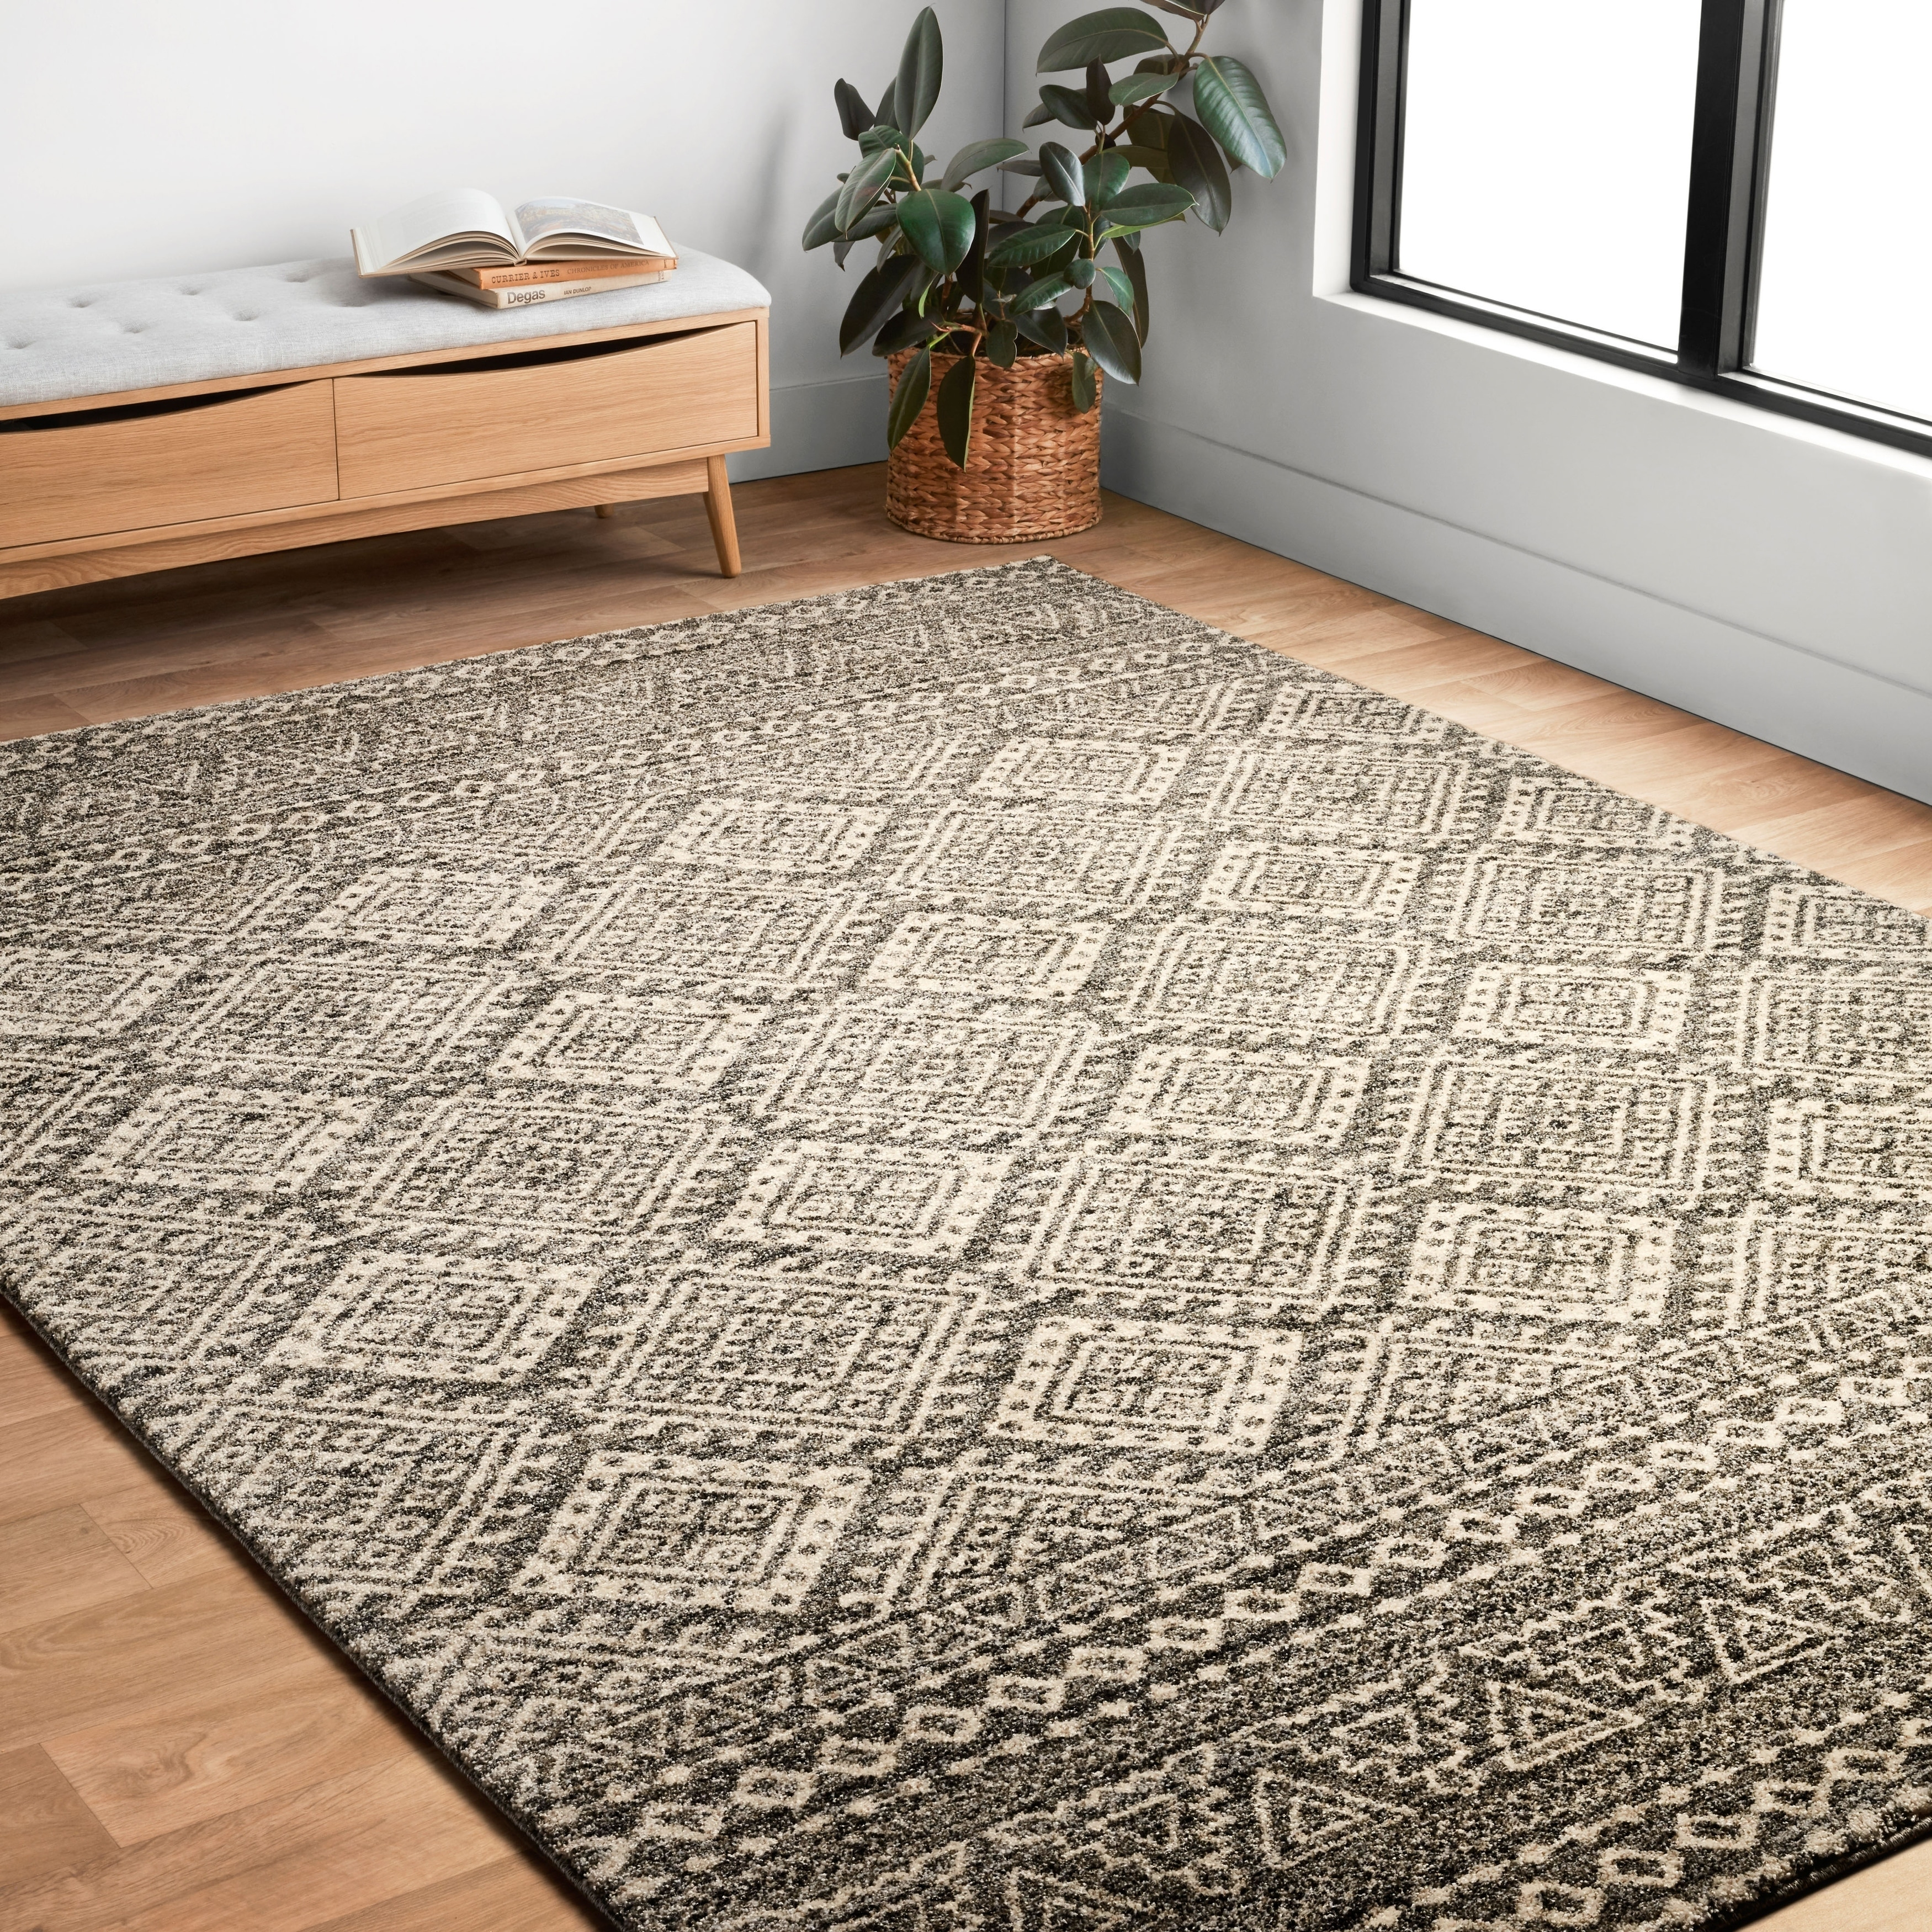 Alexander Home Brently Graphite/ Ivory Abstract Rug (3'10...